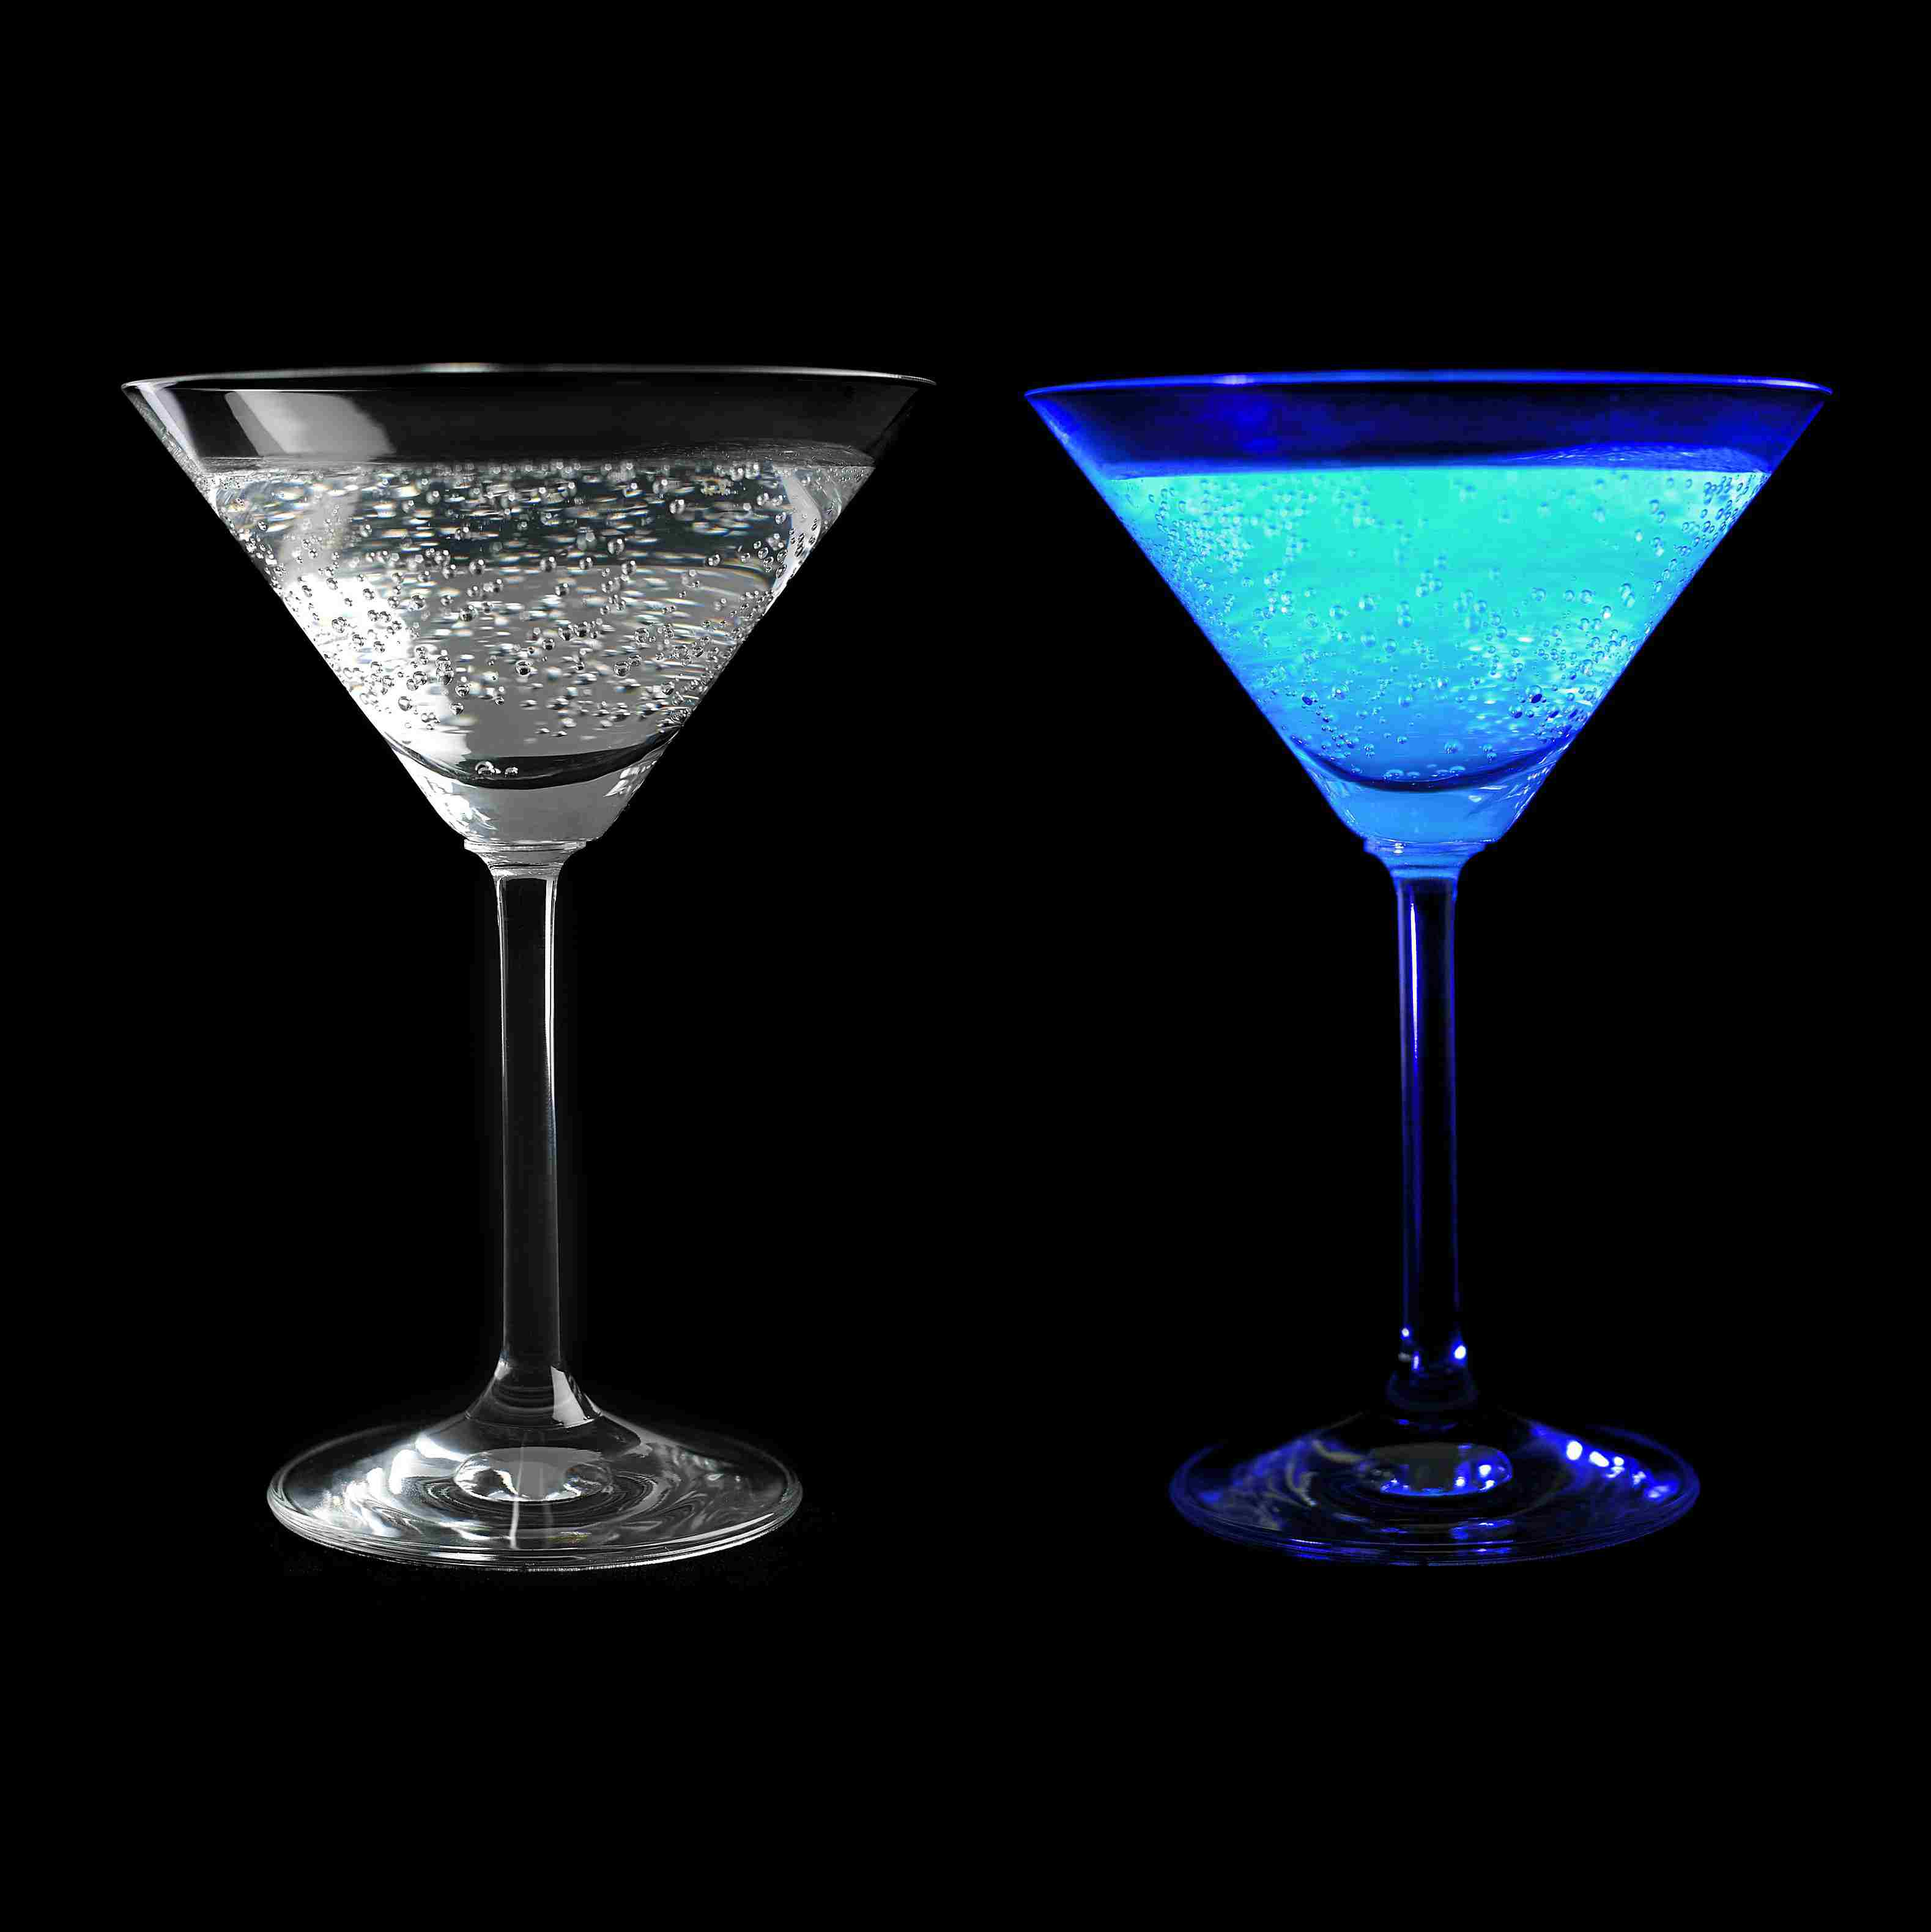 Tonic water is clear under ordinary light, but glows aqua blue under black or ultraviolet light.